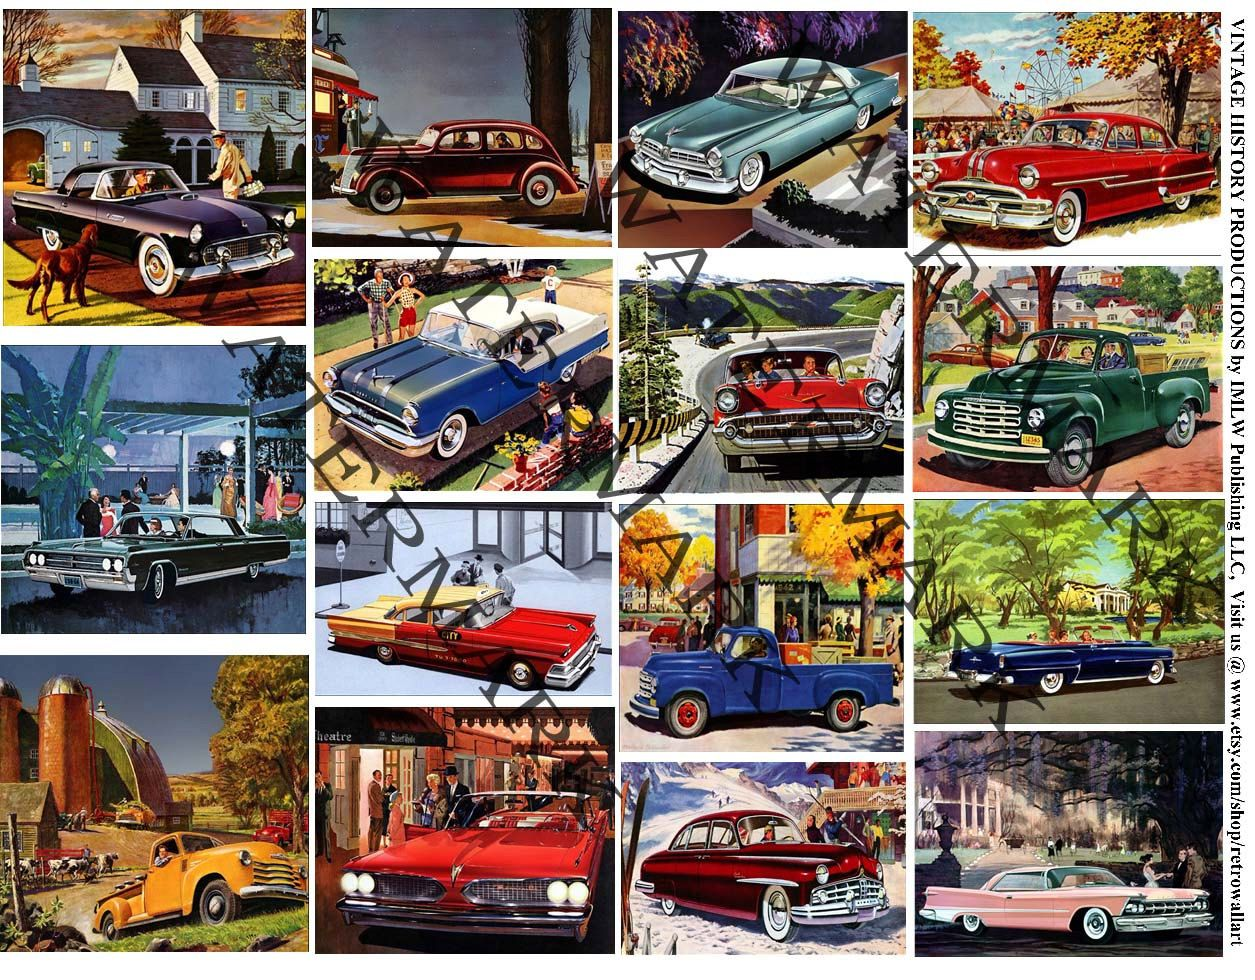 Vintage Car Illustrations Printed Automobile Stickers Car Sticker Pack Classic Car Clip Art Garage Collag Vacation Scrapbook Illustration Print Photo Stickers